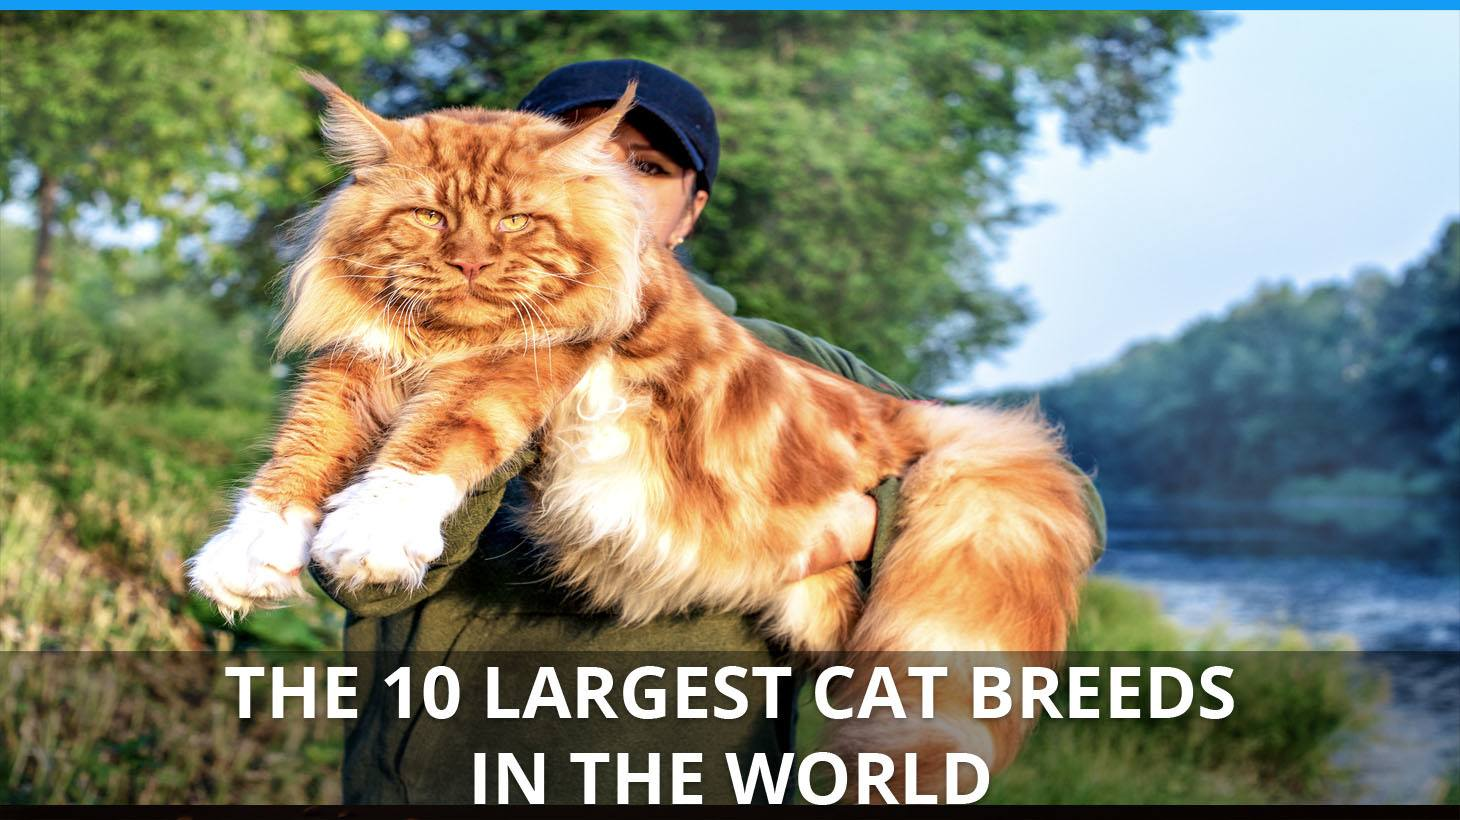 The 10 Largest Cat Breeds Ranking The Biggest Domestic Cats